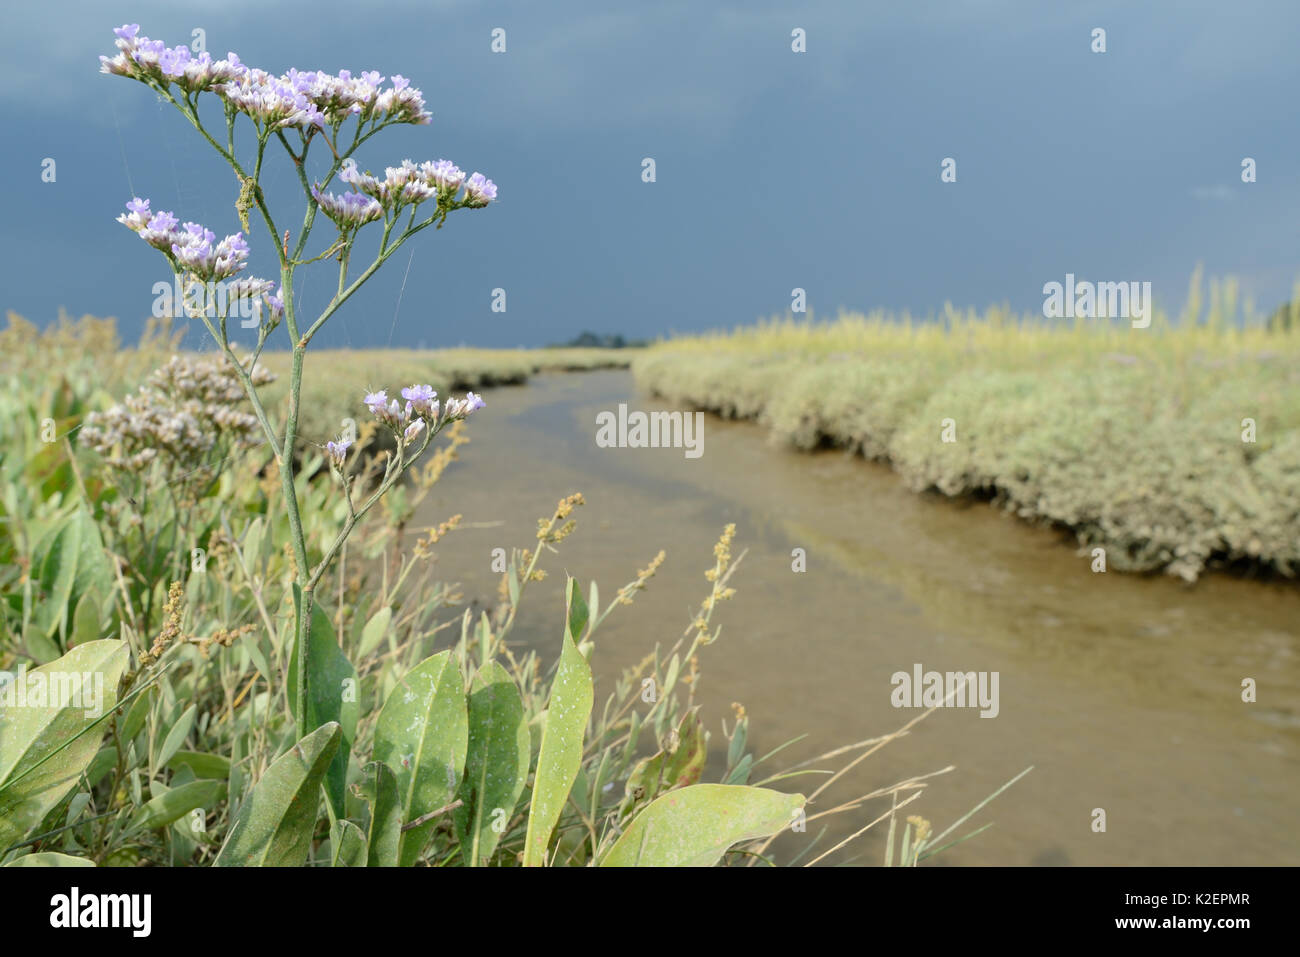 Common sea lavender (Limonium vulgare) flowering beside a saltmarsh creek bank, RSPB Arne, Dorset, July. Stock Photo